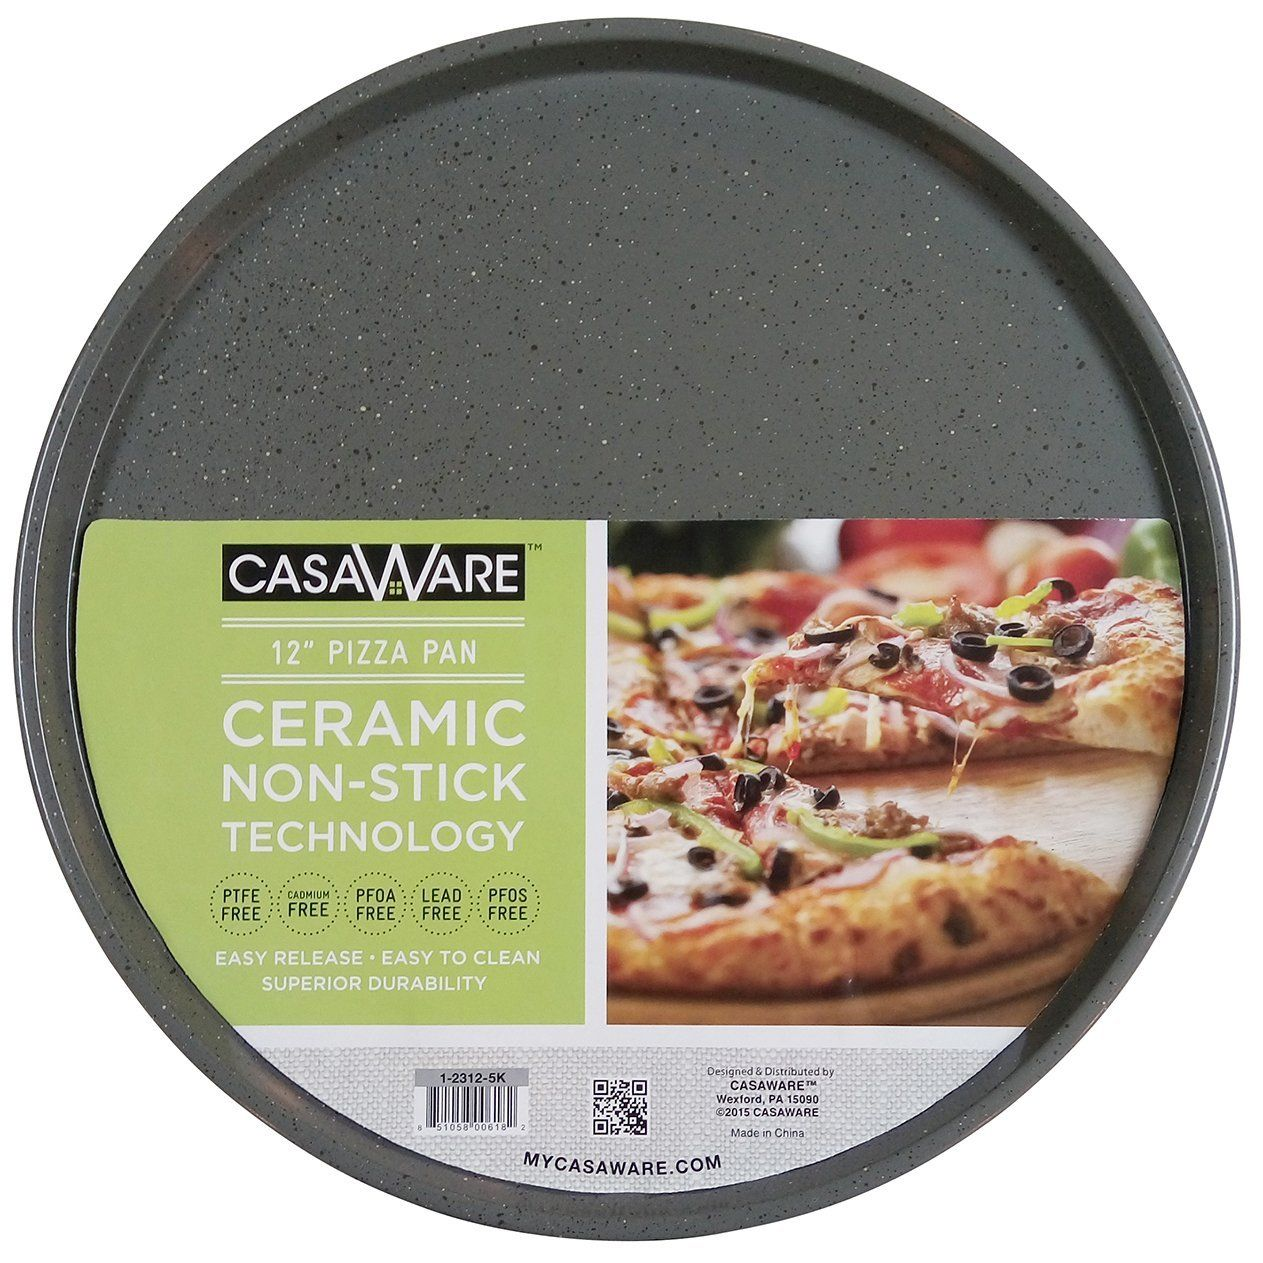 Cookware gt see more select by calphalon ceramic nonstick 8 inch an - Casaware Toaster Oven Pizza Baking Pan 12 Inch Silver Granite You